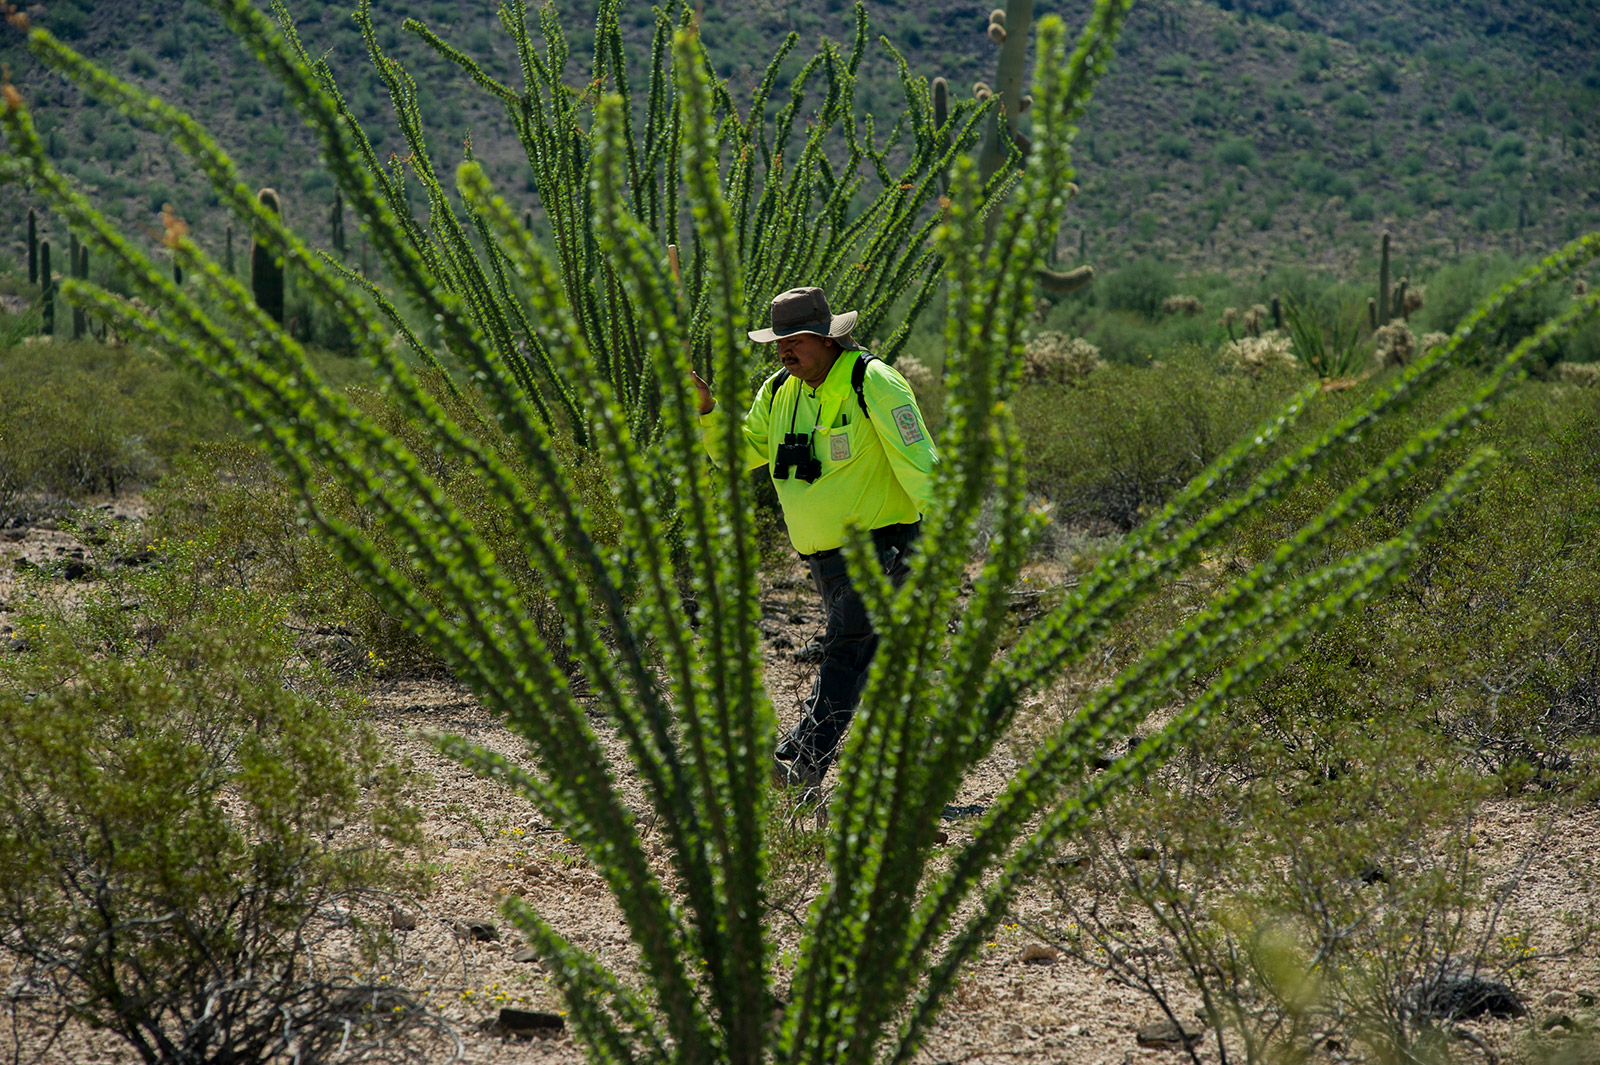 Ely Ortiz, founder and leader of Aguilas Del Desierto, walks between Ocotillo plants in the Arizona desert on Aug. 26, 2017, while searching for missing migrants near the U.S.-Mexico border. <em>(Brandon Quester/inewsource)</em>